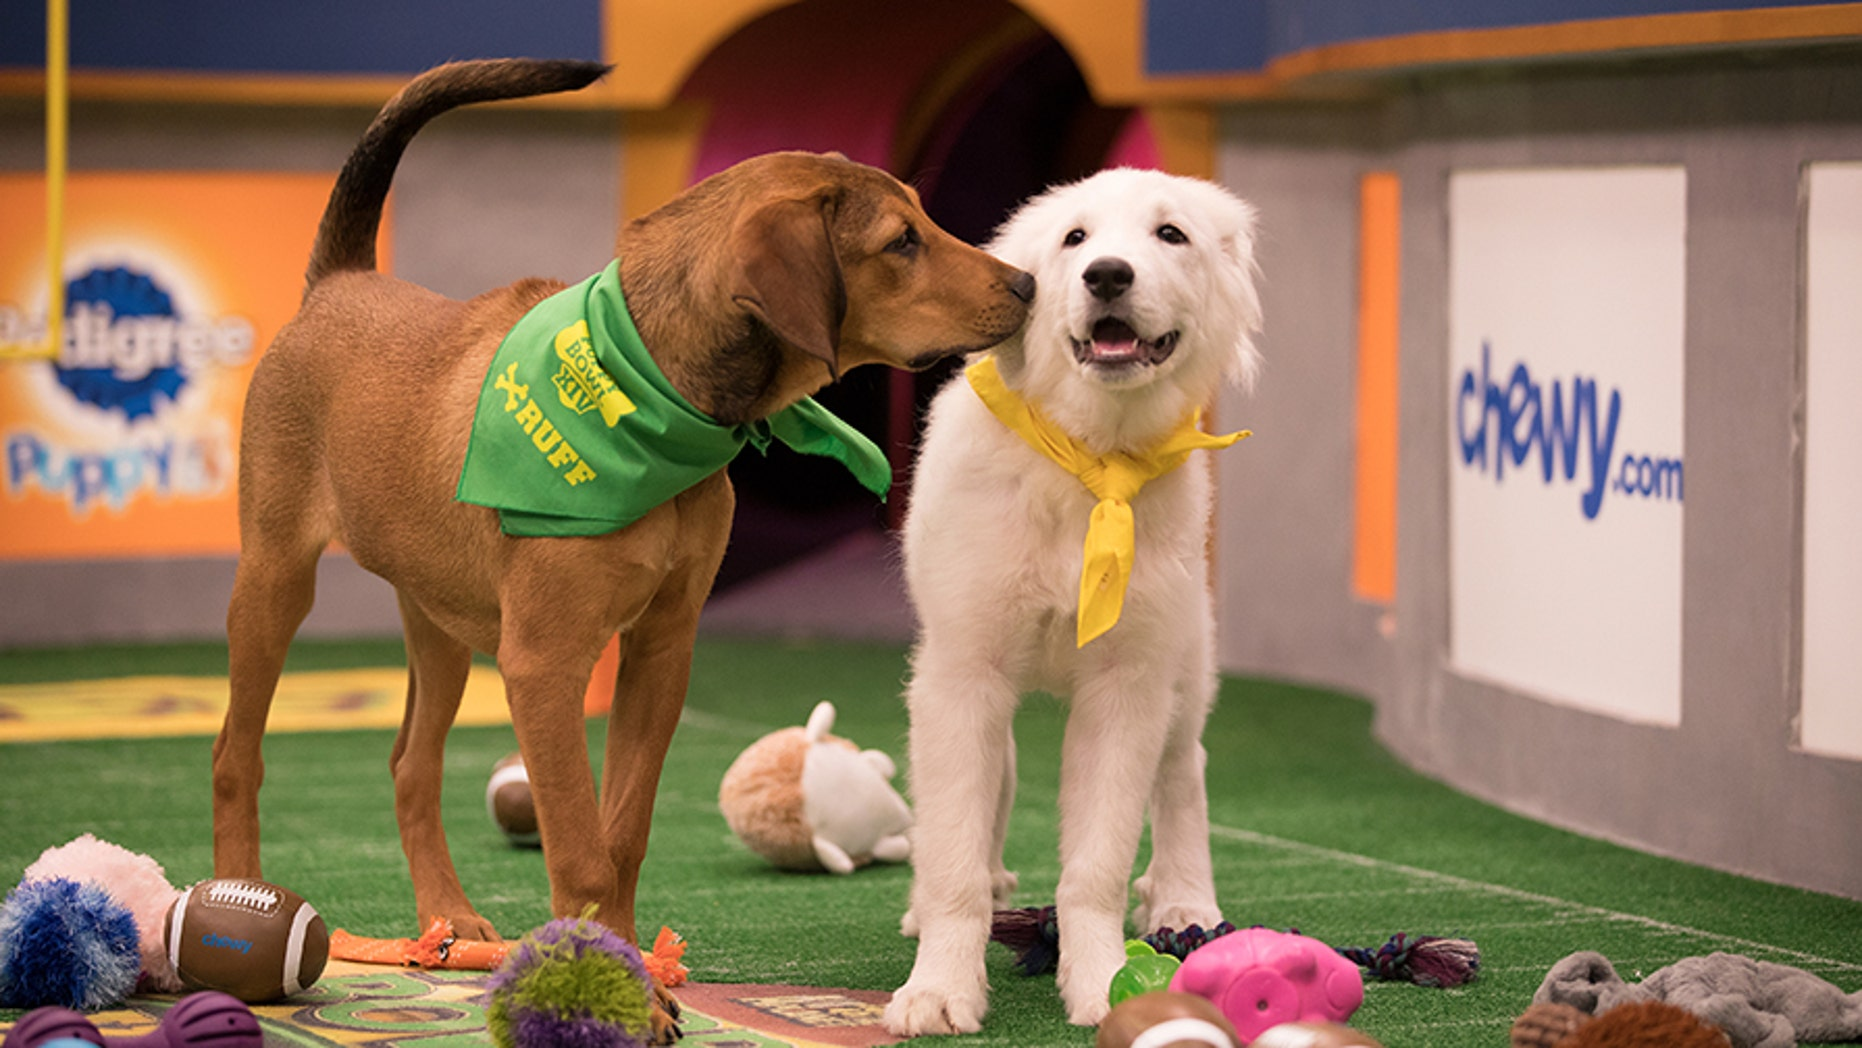 Puppy Bowl XIV will air at 3 p.m. ET on Feb. 4 on Animal Planet.